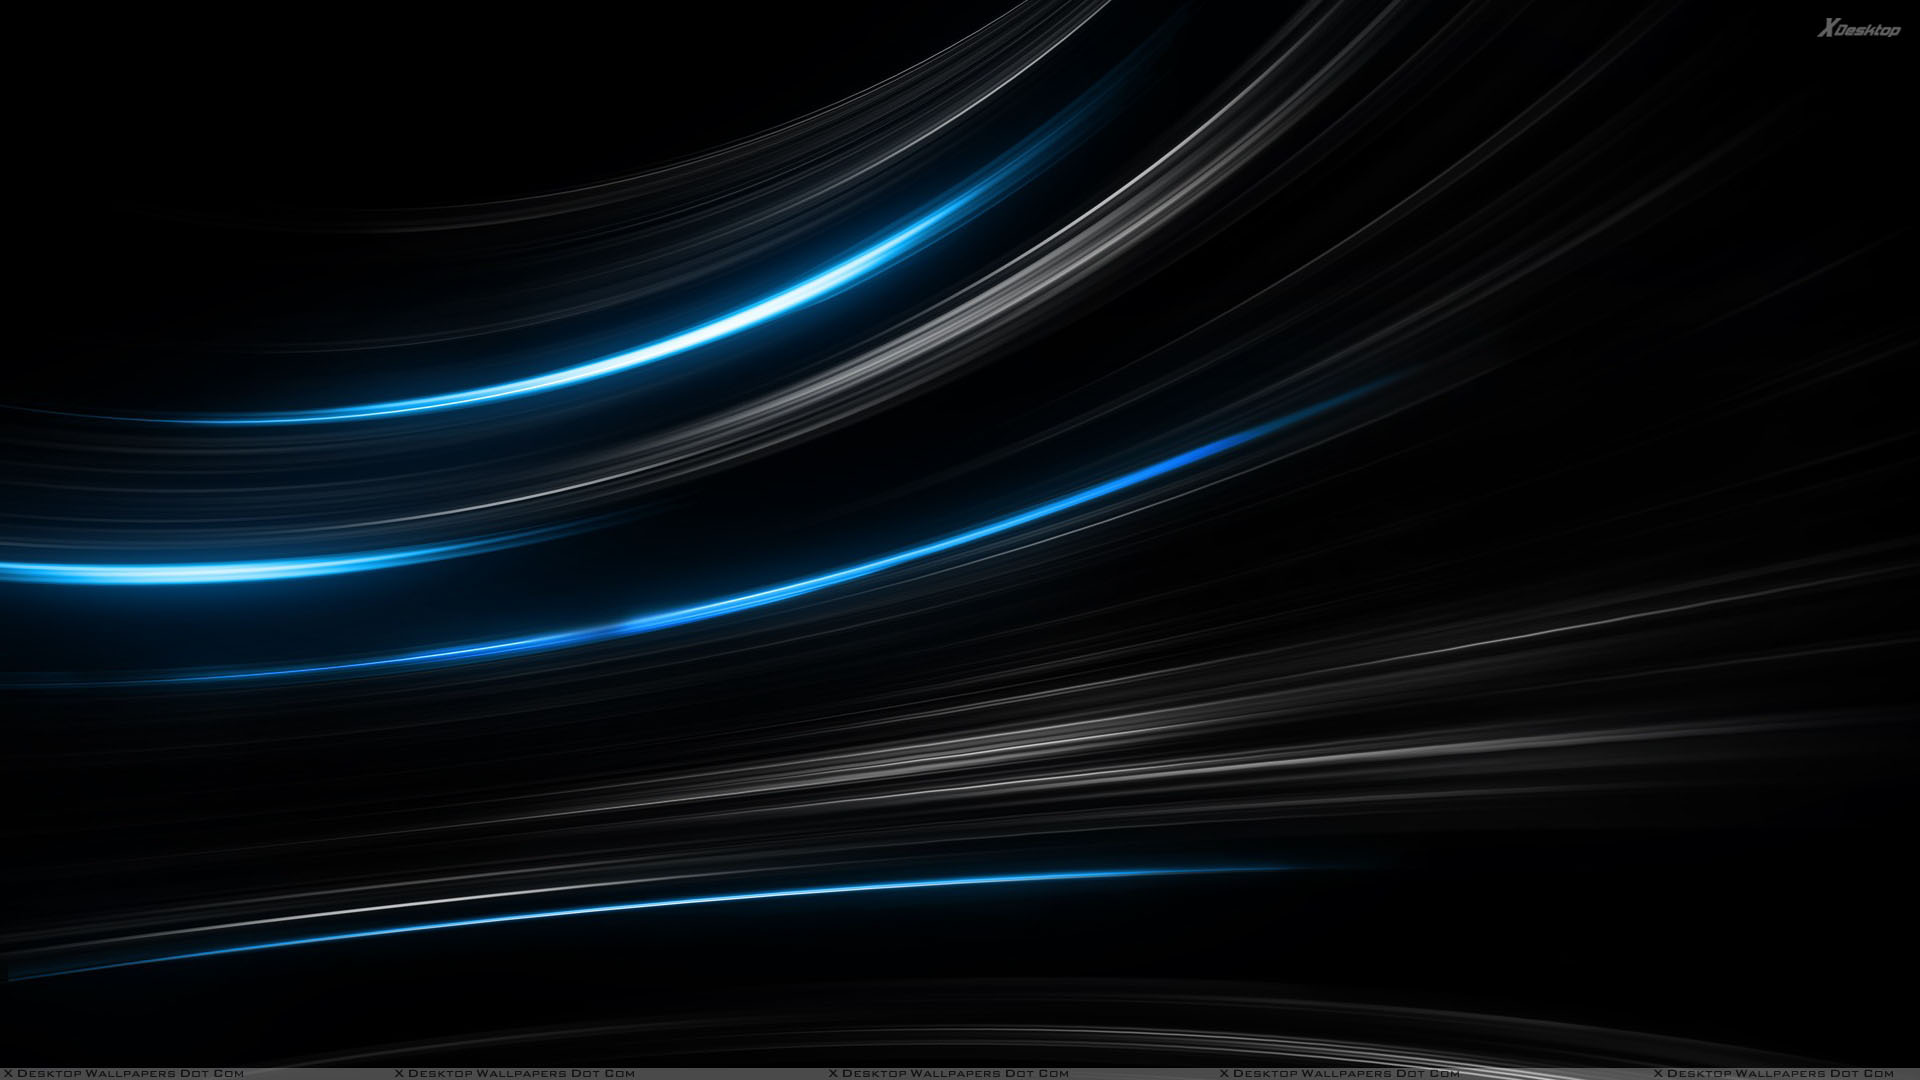 Abstract Backgrounds, 372923 Blue And Black Wallpapers, by Tyler